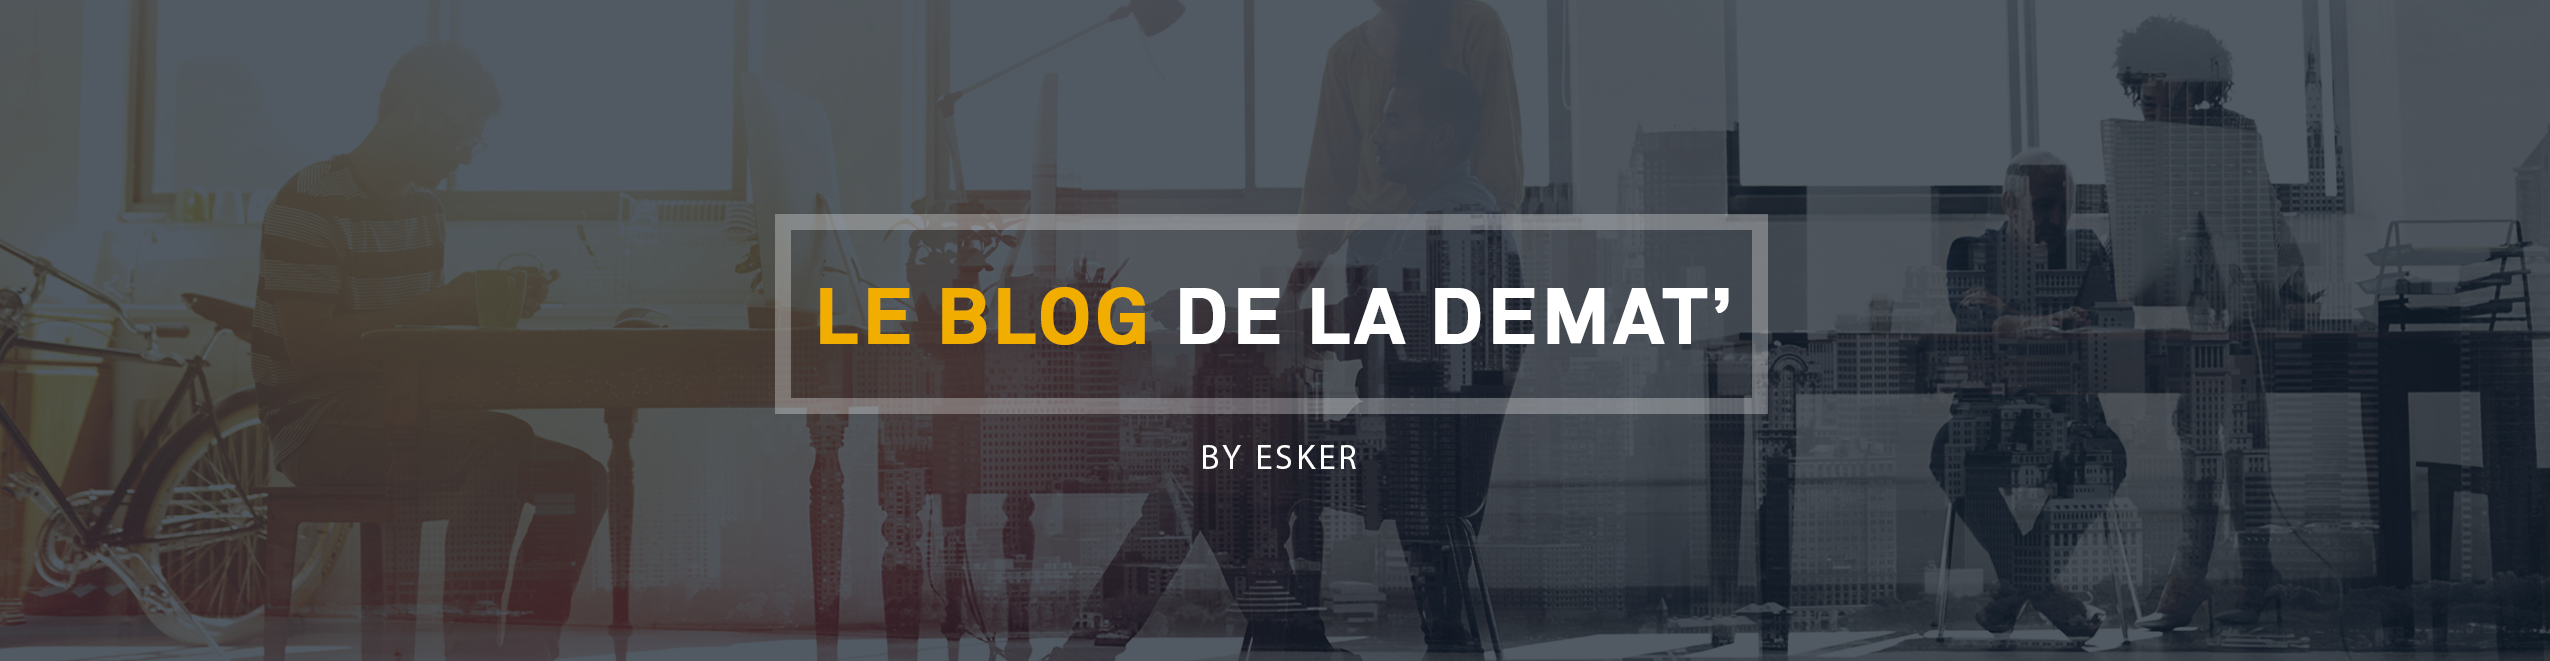 Le Blog de la Démat' by Esker